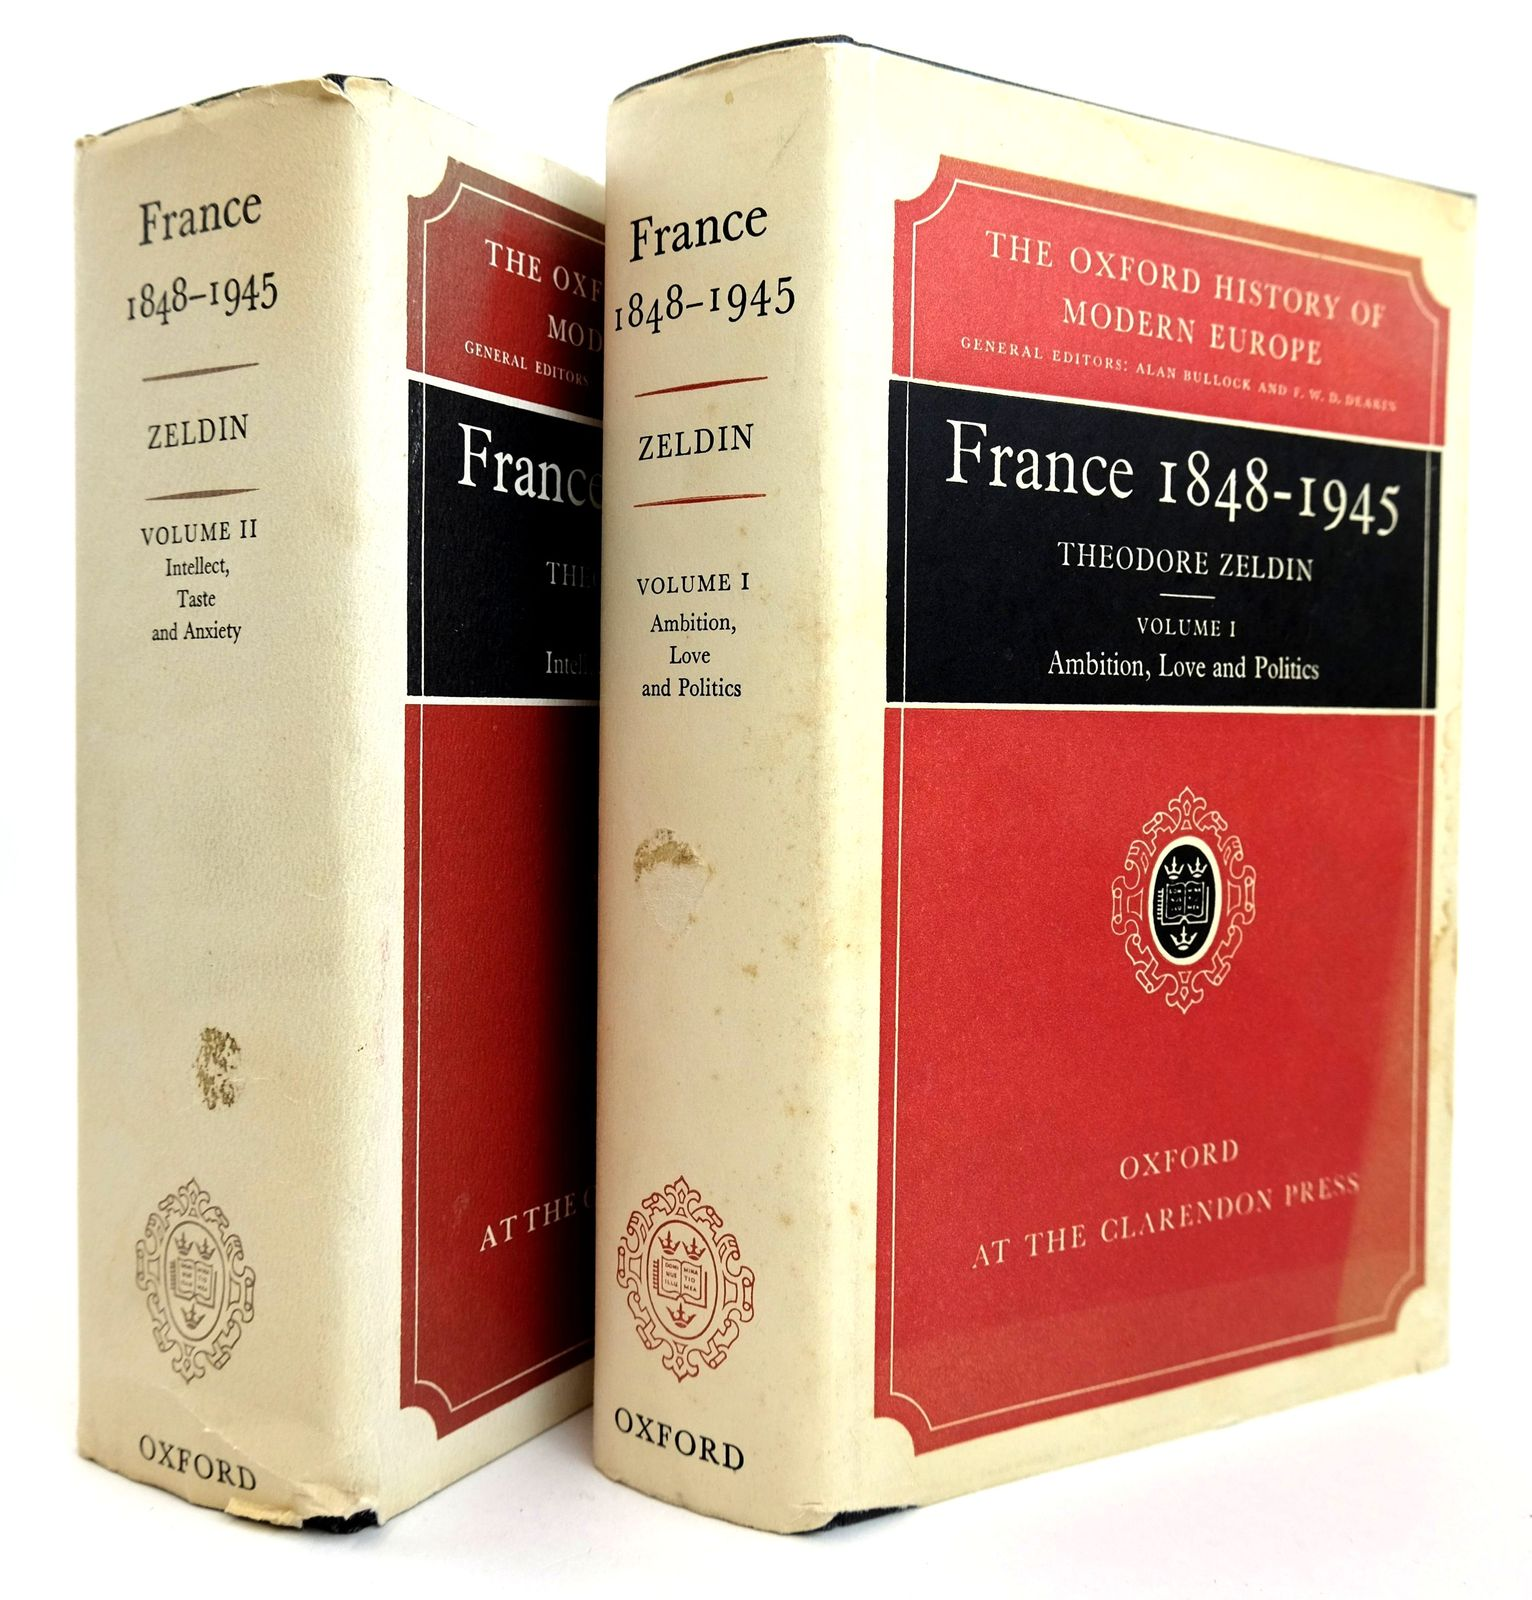 Photo of FRANCE 1848-1945 (2 VOLUMES) written by Zeldin, Theodore published by Oxford at the Clarendon Press (STOCK CODE: 1818863)  for sale by Stella & Rose's Books